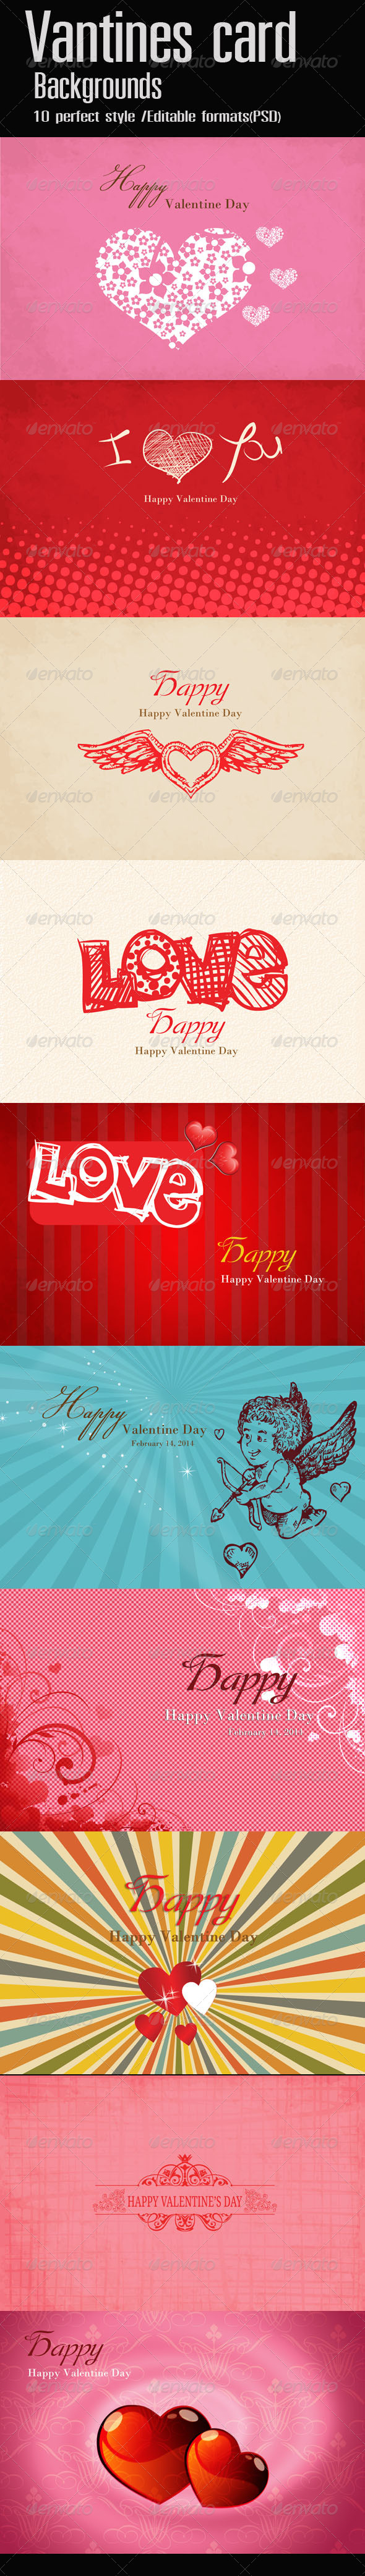 Valentine Card/Backgrounds